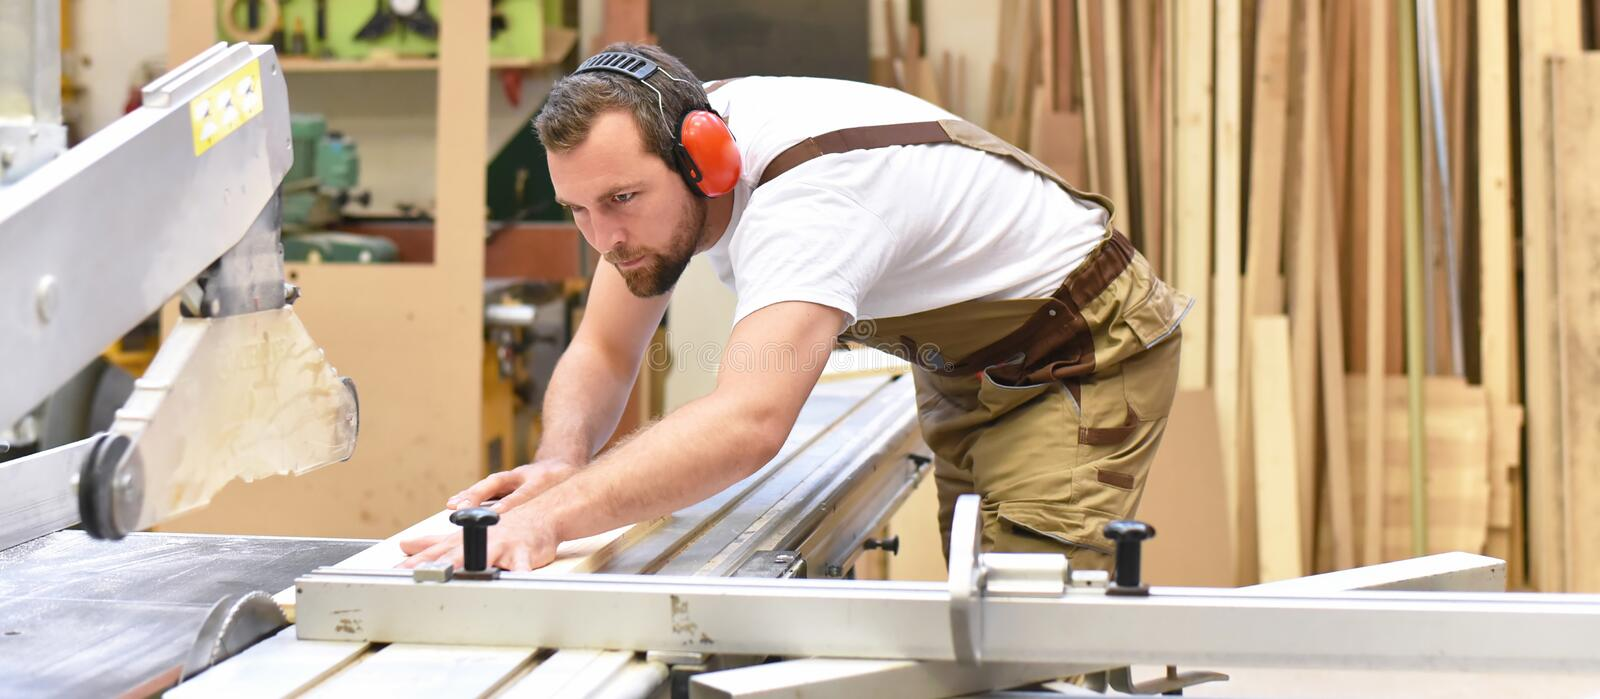 Carpenter works in a joinery - workshop for woodworking and sawing. Closeup photo royalty free stock photos